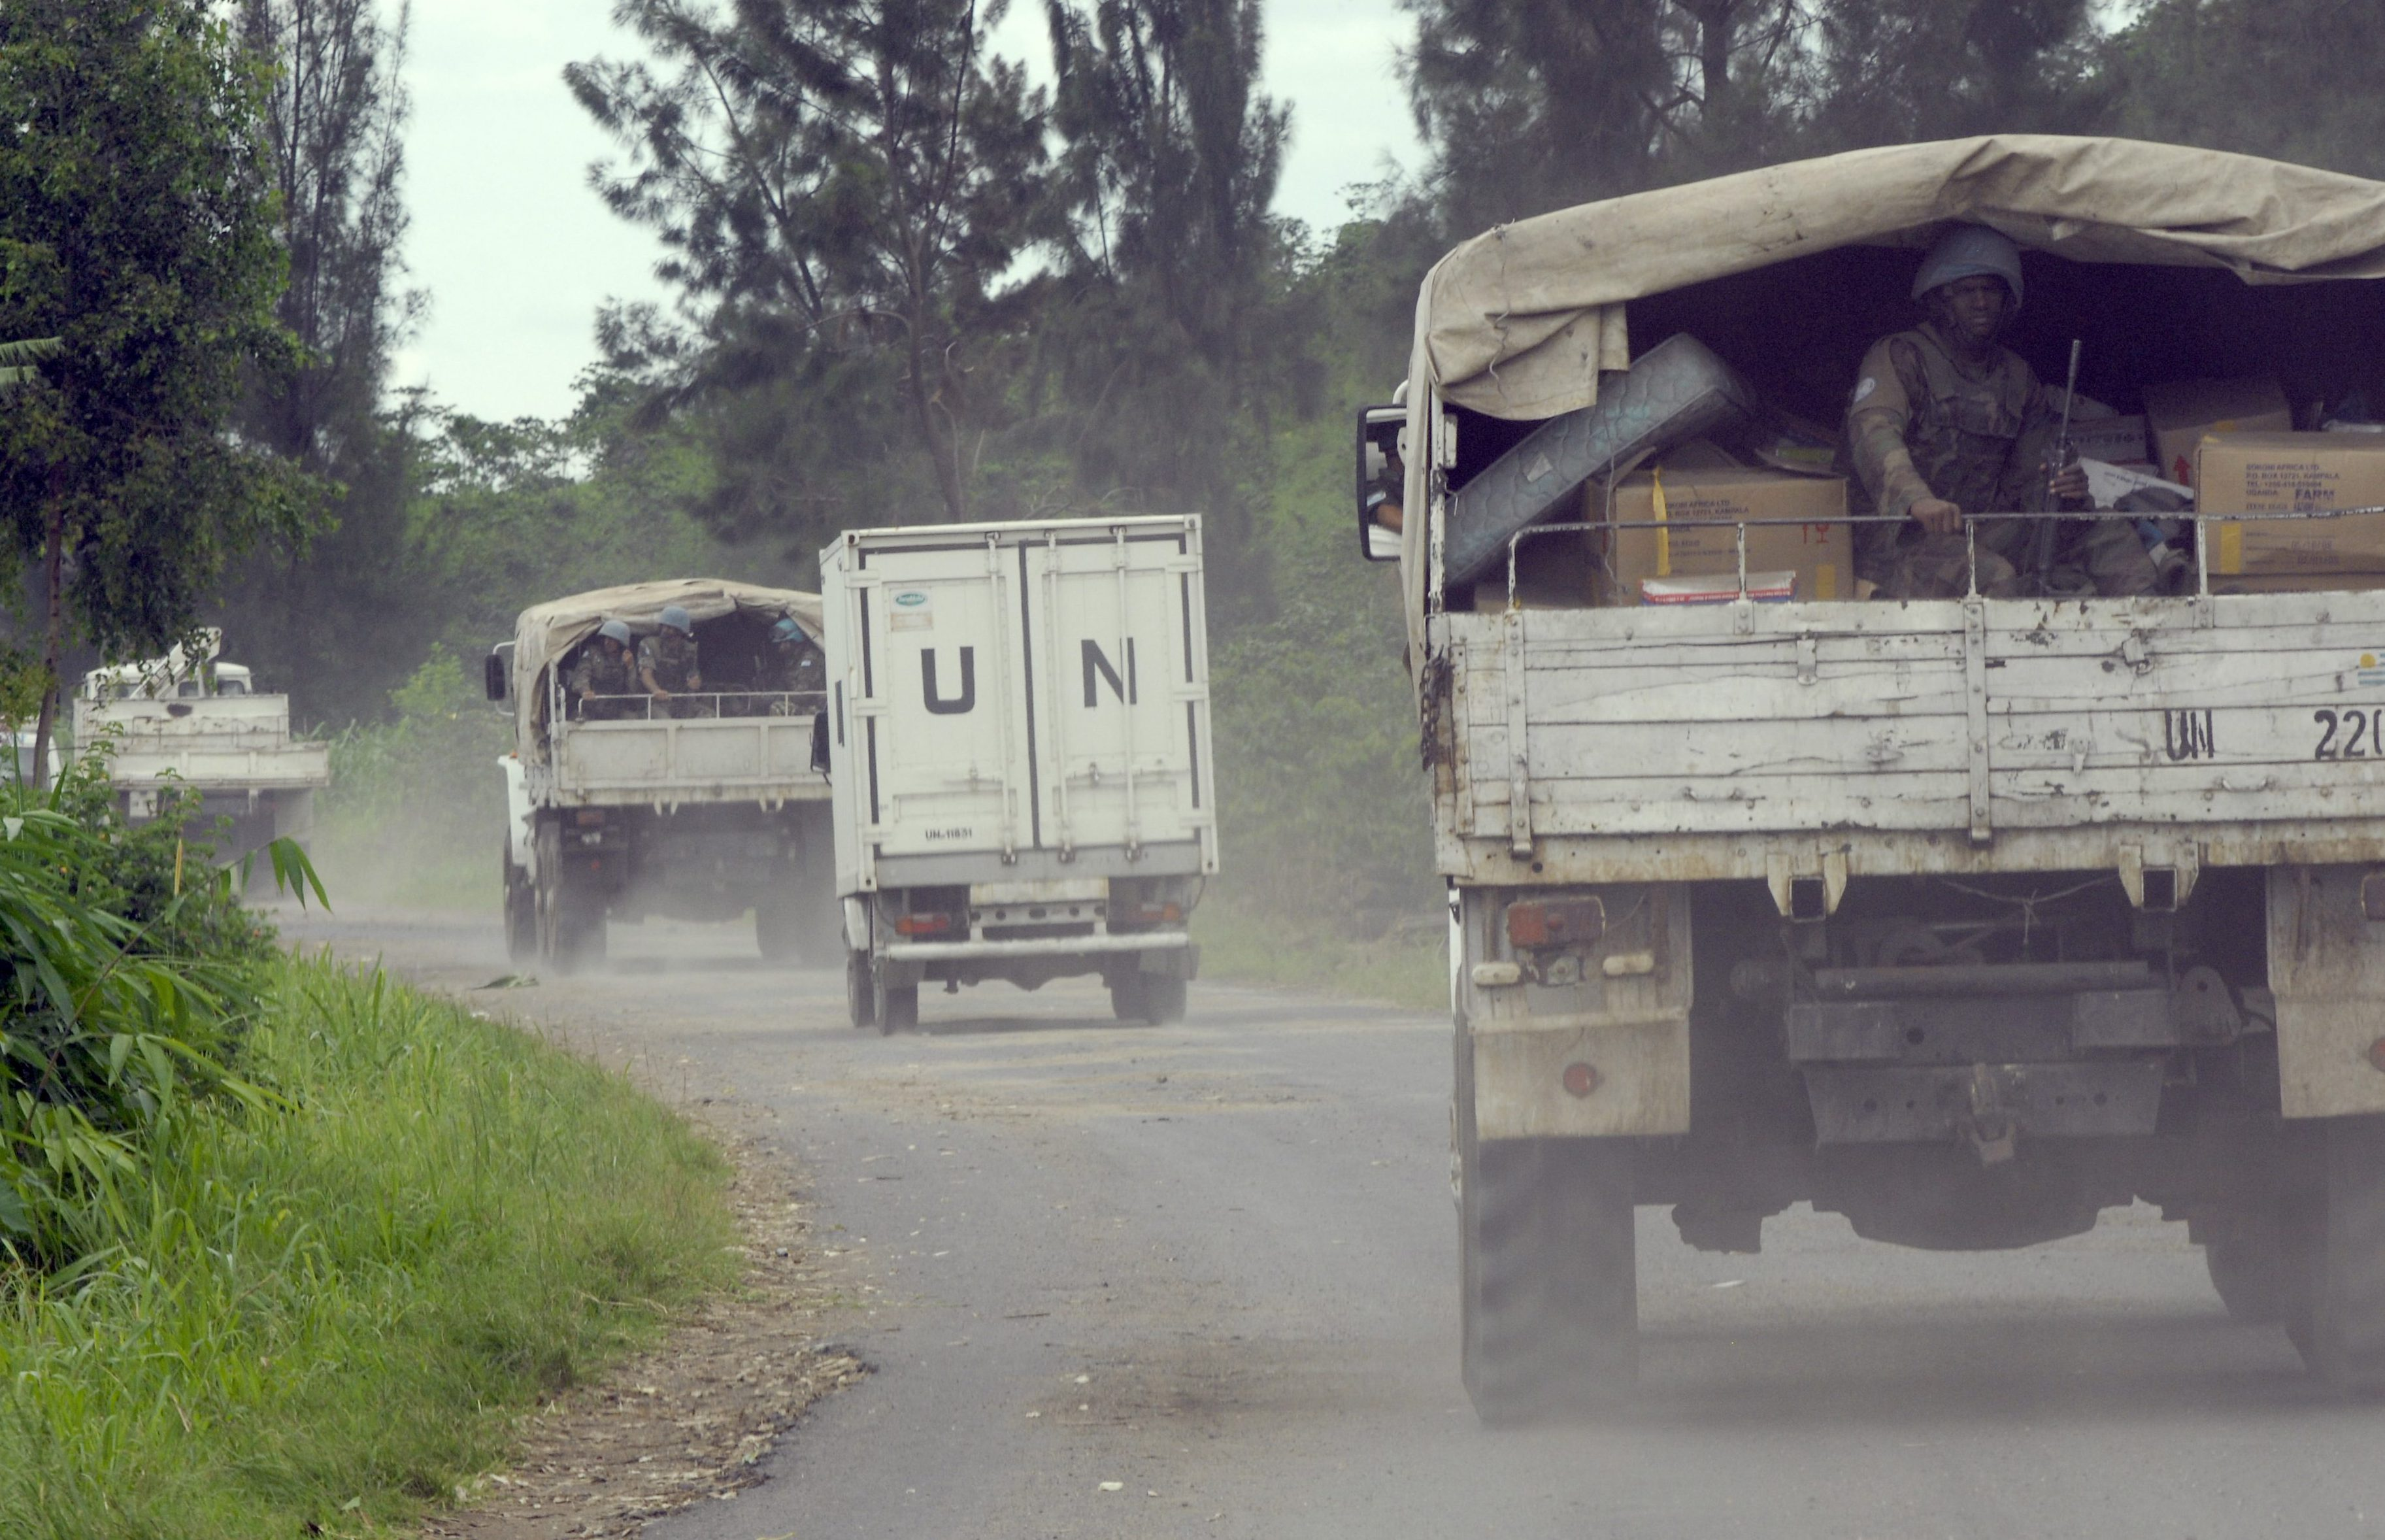 A peacekeeper sits on the back of a truck as a United Nations aid convoy escorted by U.N. peacekeepers travels to the eastern town of Rutshuru